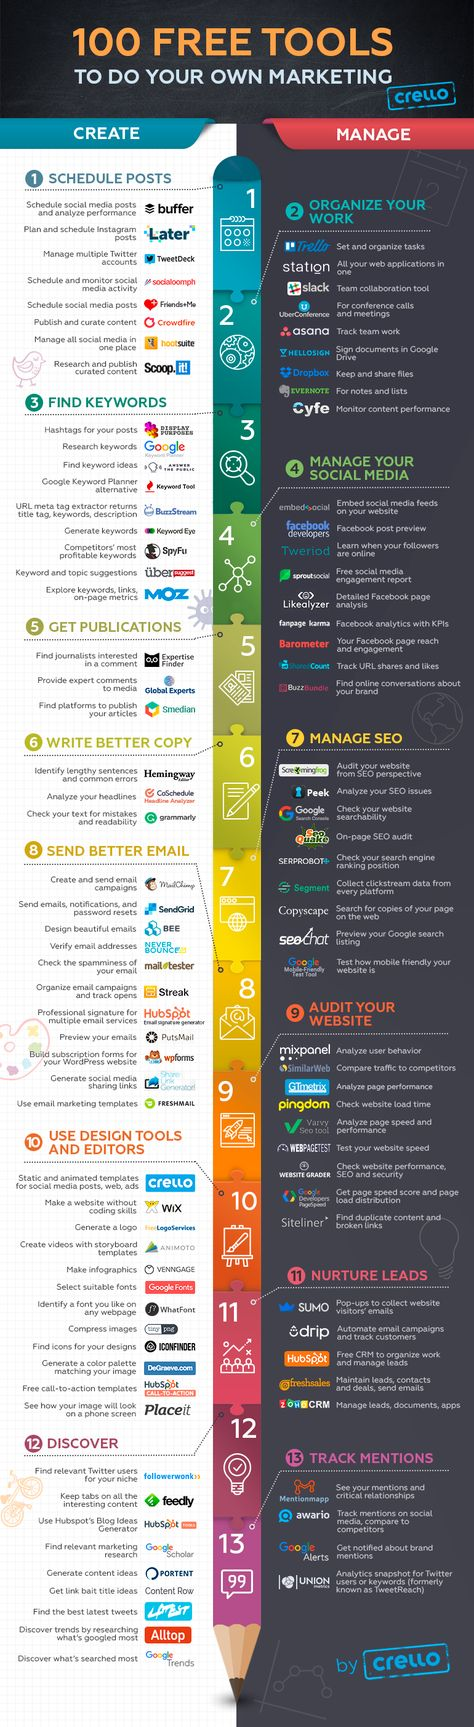 Social Media, SEO, Email, Graphic Design: 100 Free Tools For Digital Marketers (Infographic)